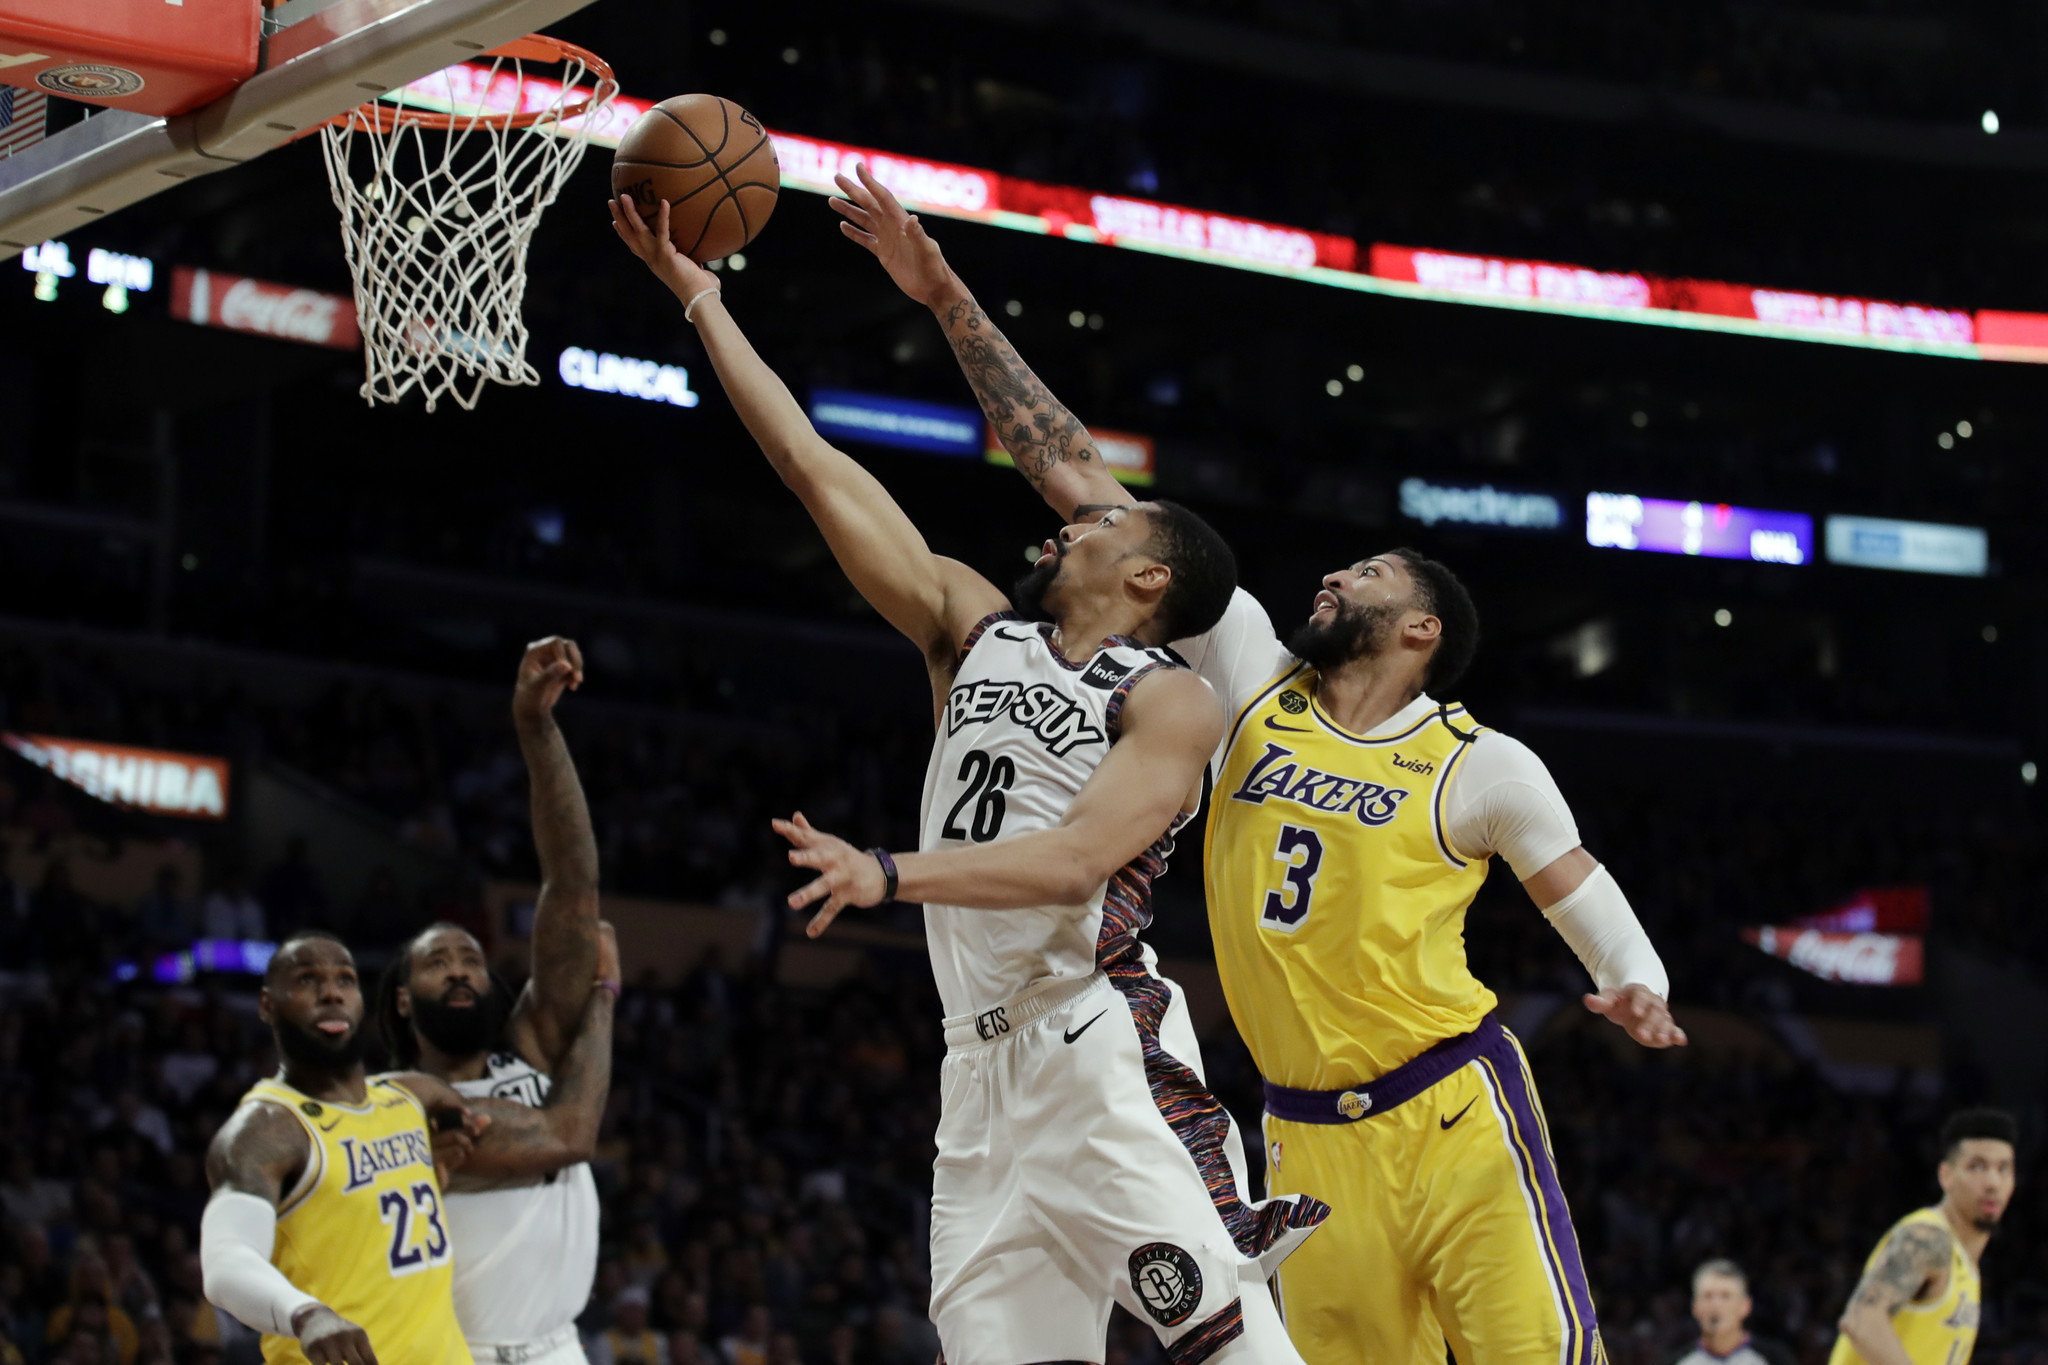 If these Nets can beat the Lakers on the road, just how good can they be next season?